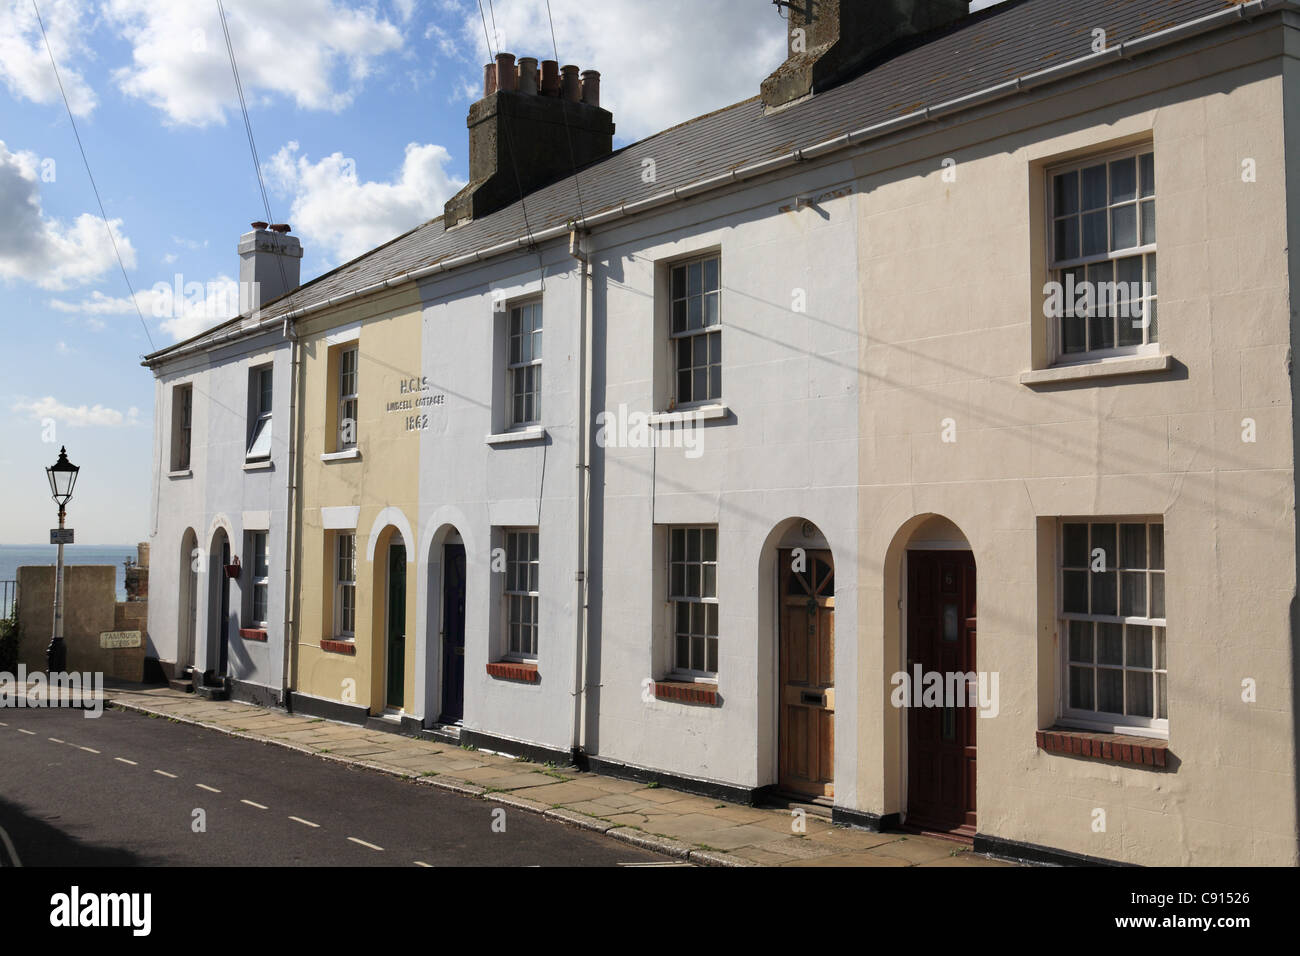 Lindsell Cottages, Hastings old Town, East Sussex, South Coast, England, UK - Stock Image